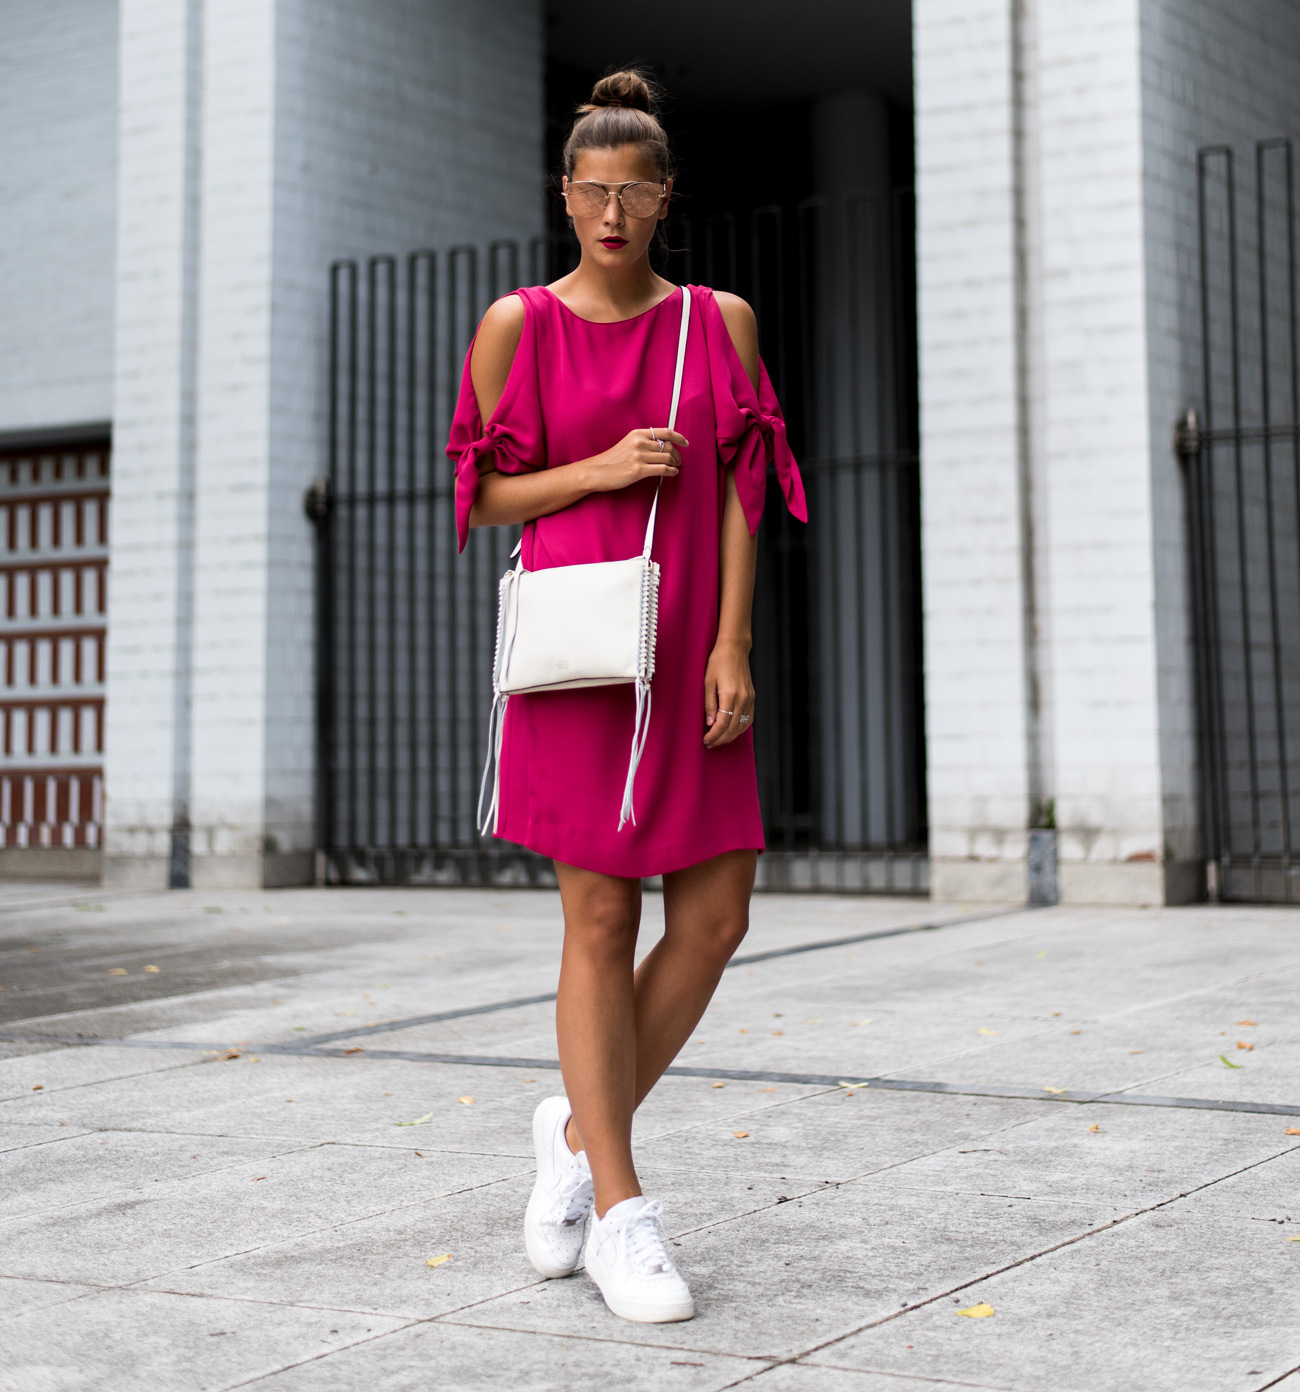 outfit: pinkes cocktailklein mit cut outs und